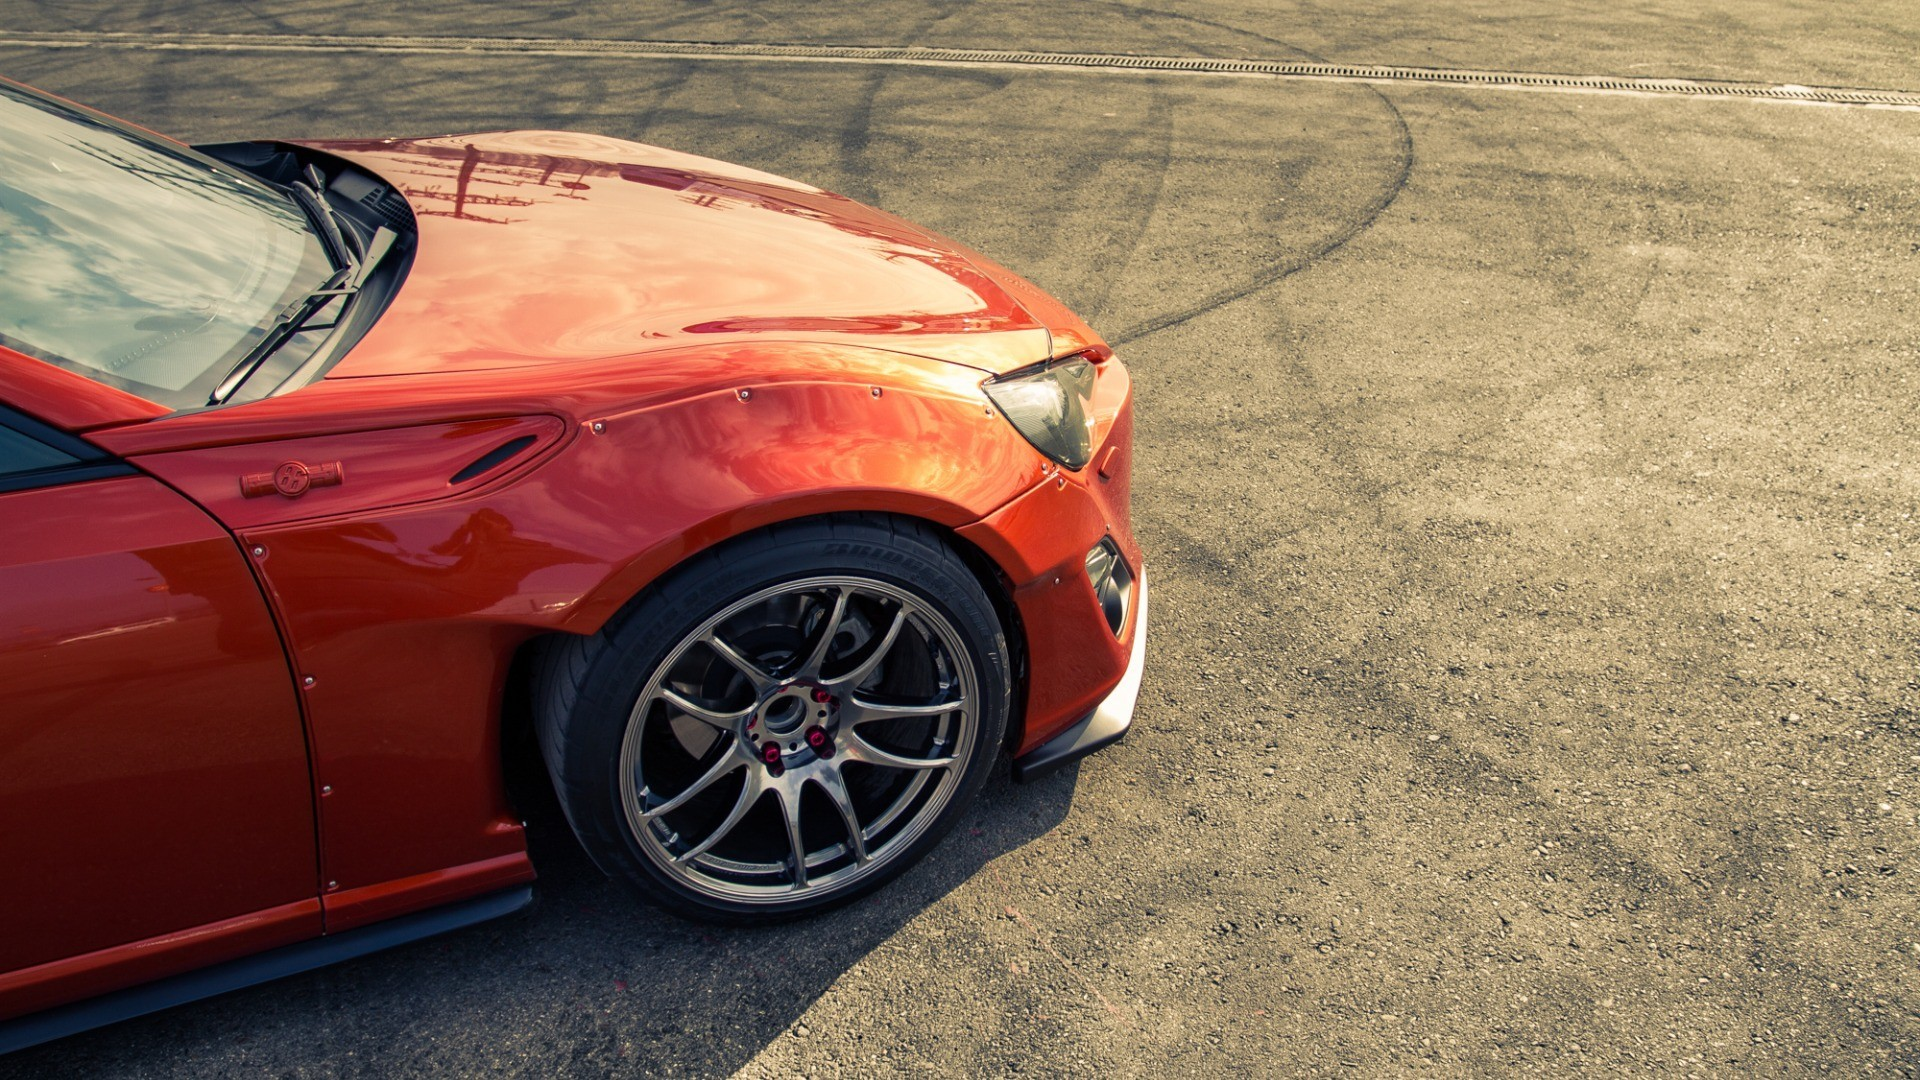 Res: 1920x1080, Toyota, Toyota GT86, Rocket Bunny Wallpapers HD / Desktop and Mobile  Backgrounds